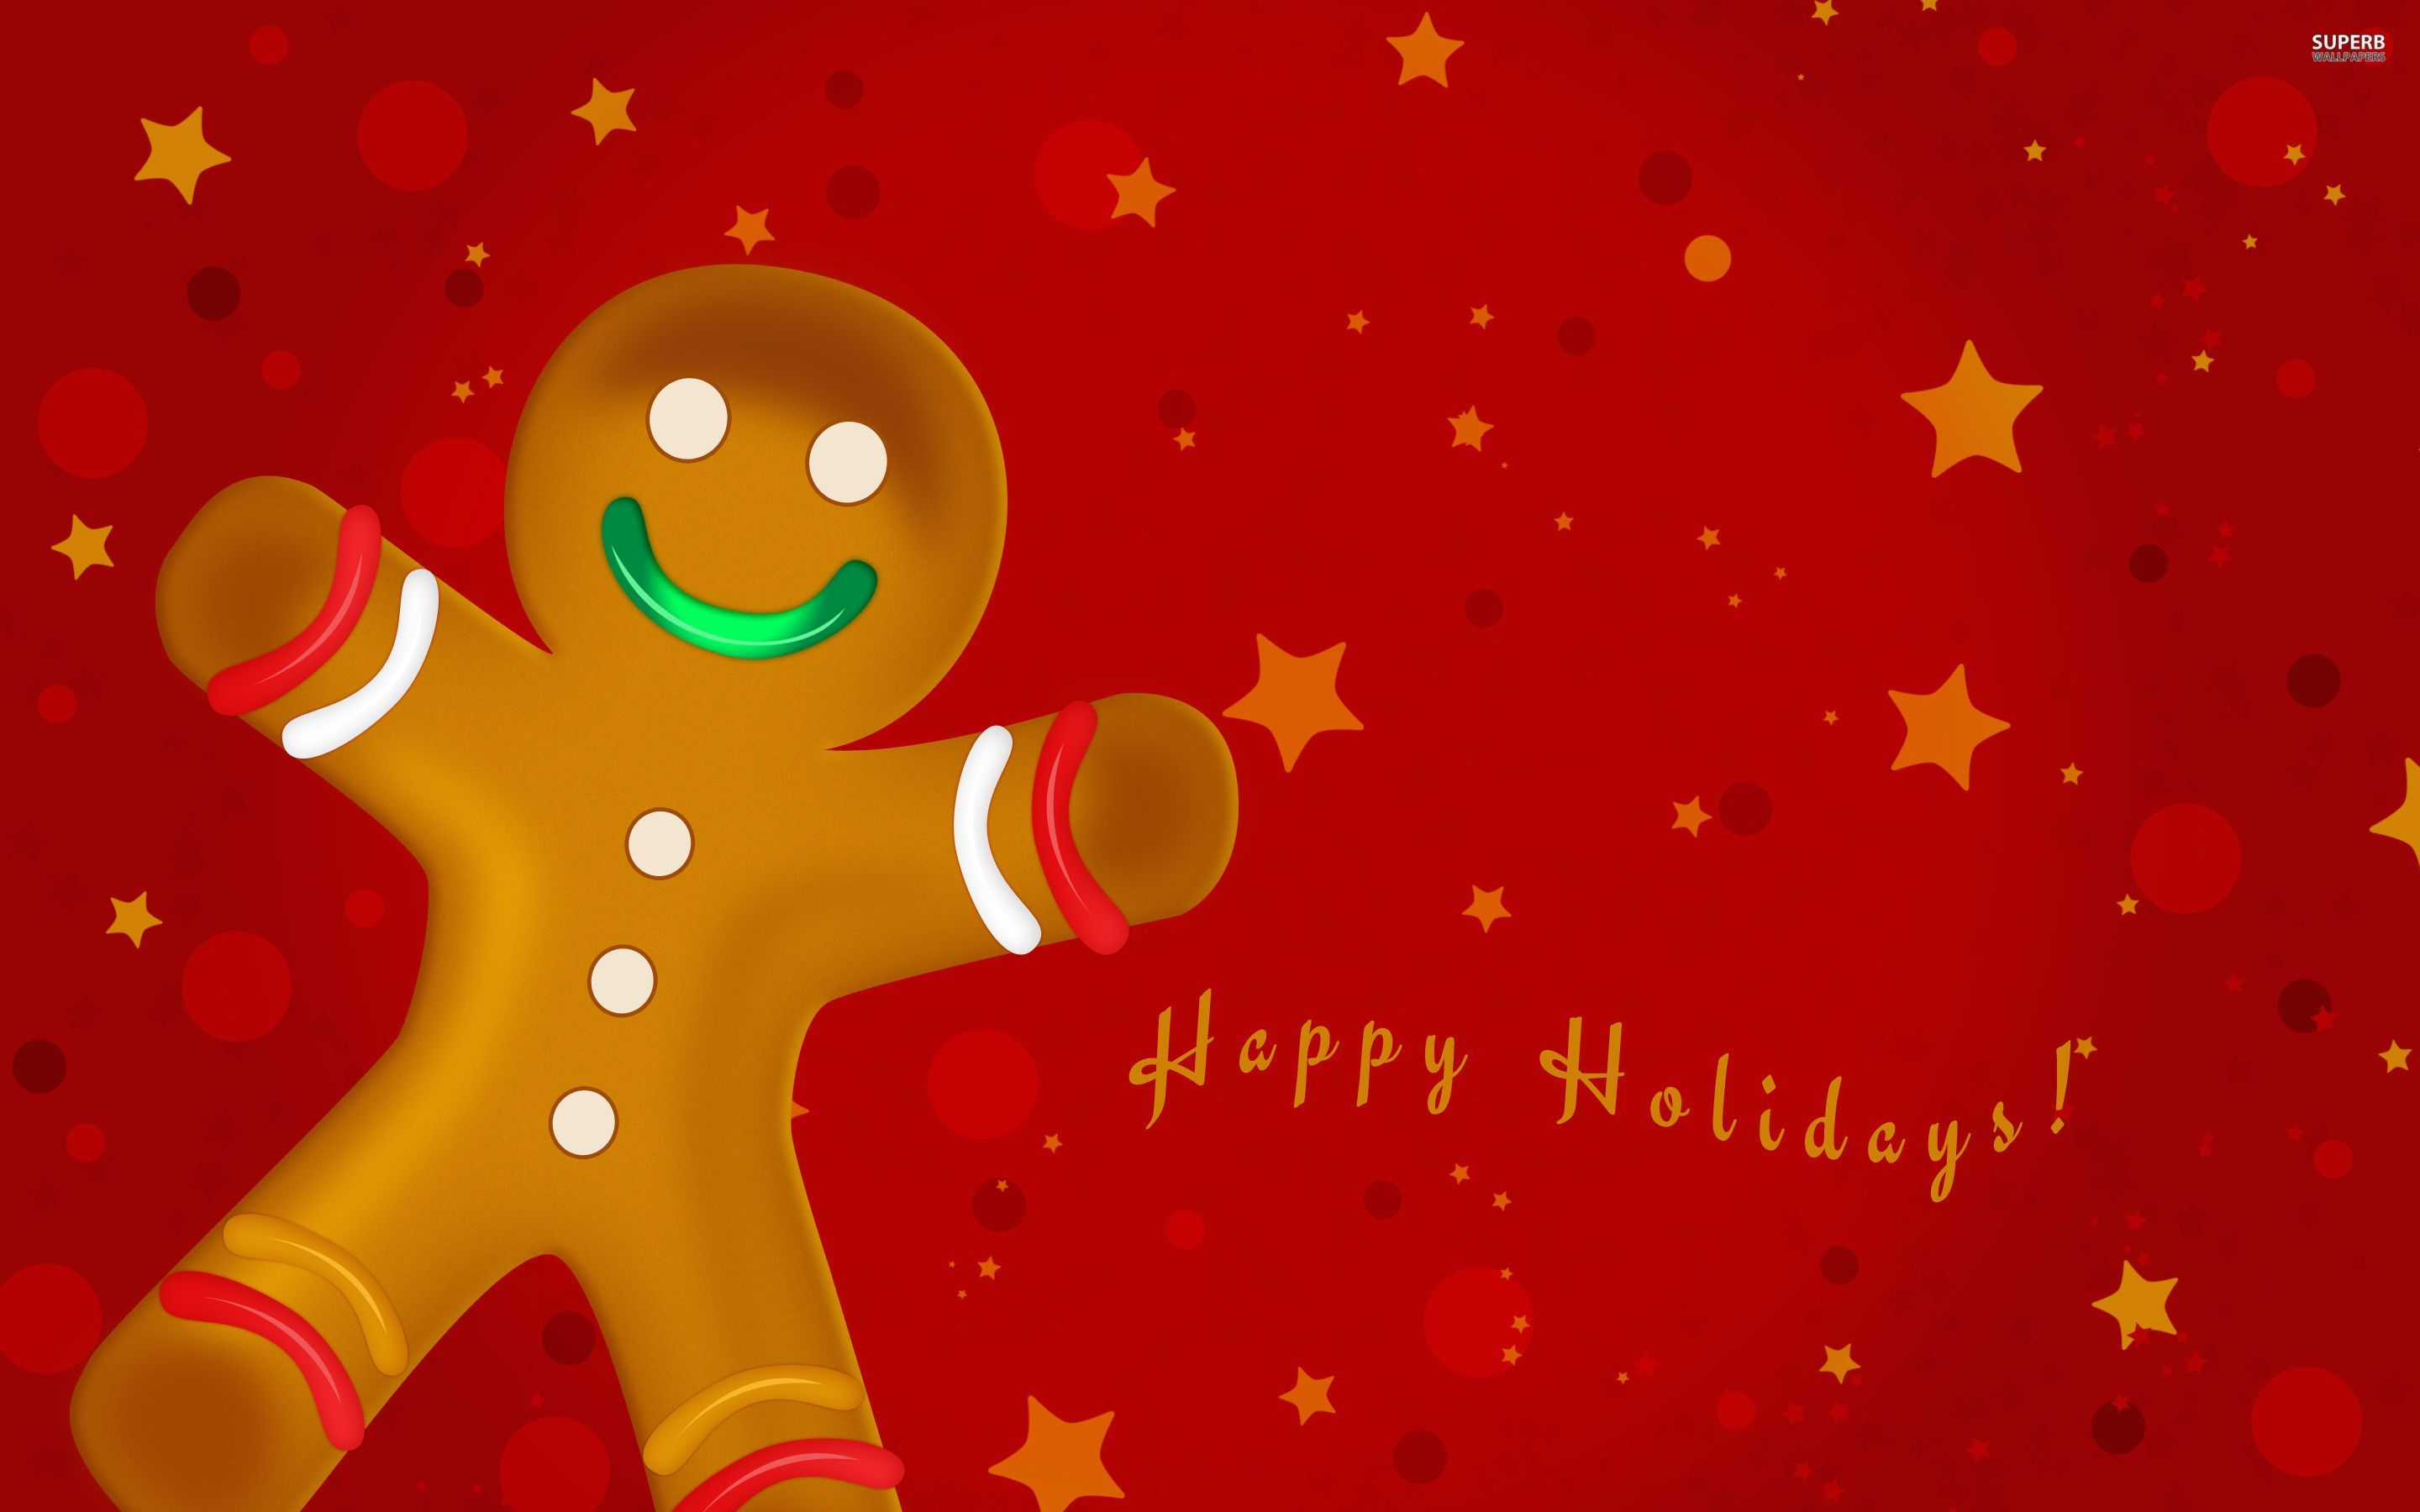 Search Results For Gingerbread Man Christmas Wallpaper Adorable Wallpapers